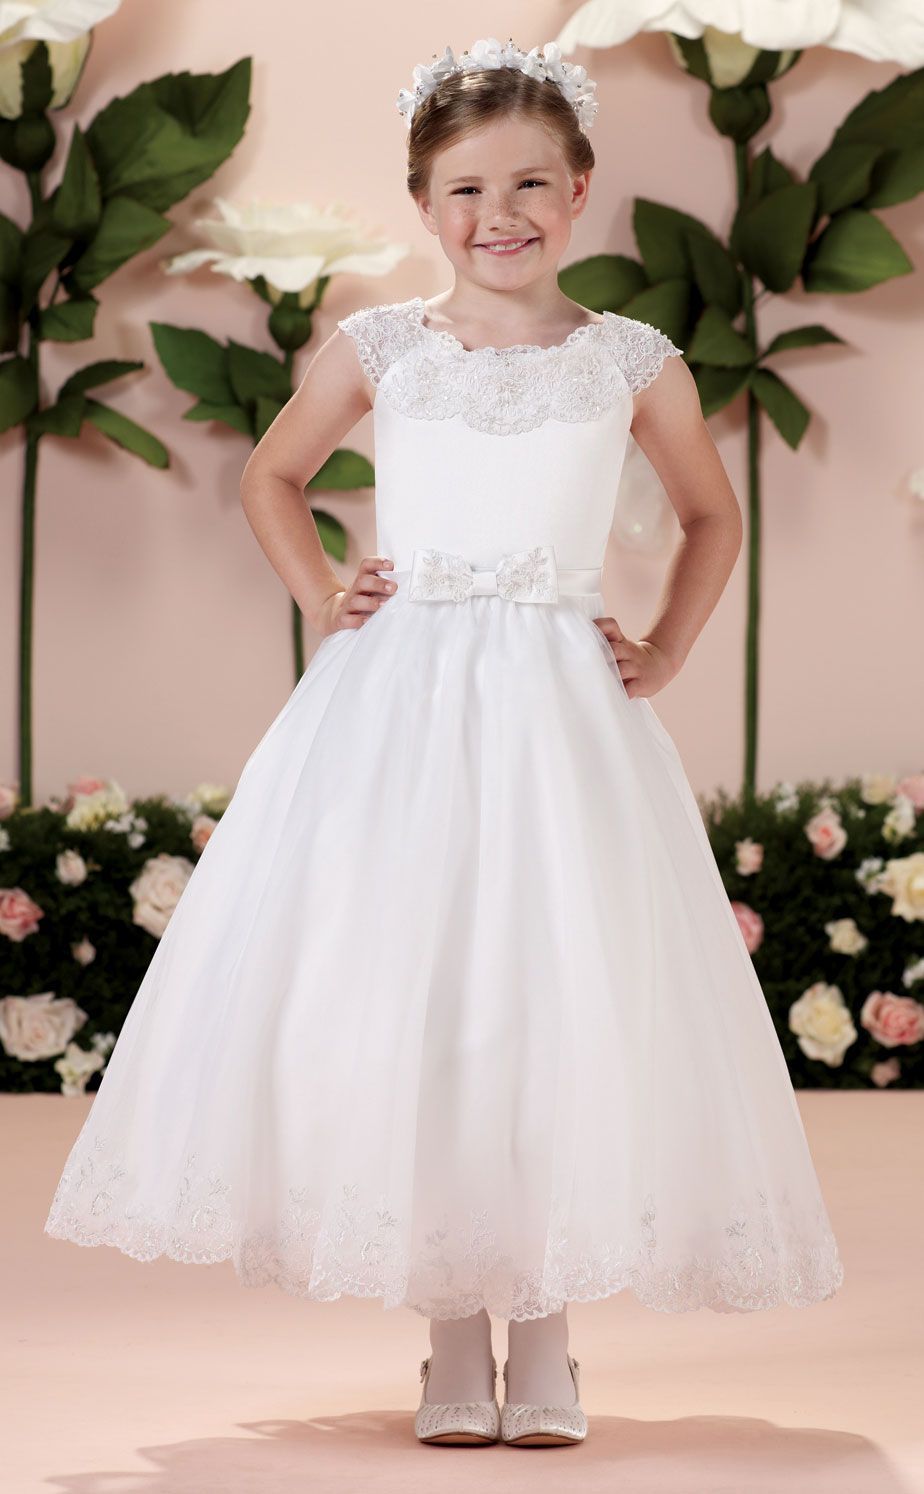 First Communion Dress With Scalloped Lace Applique Neckline Ivory Flower Girl Dresses White Flower Girl Dresses Flower Girl Dresses [ 1494 x 924 Pixel ]